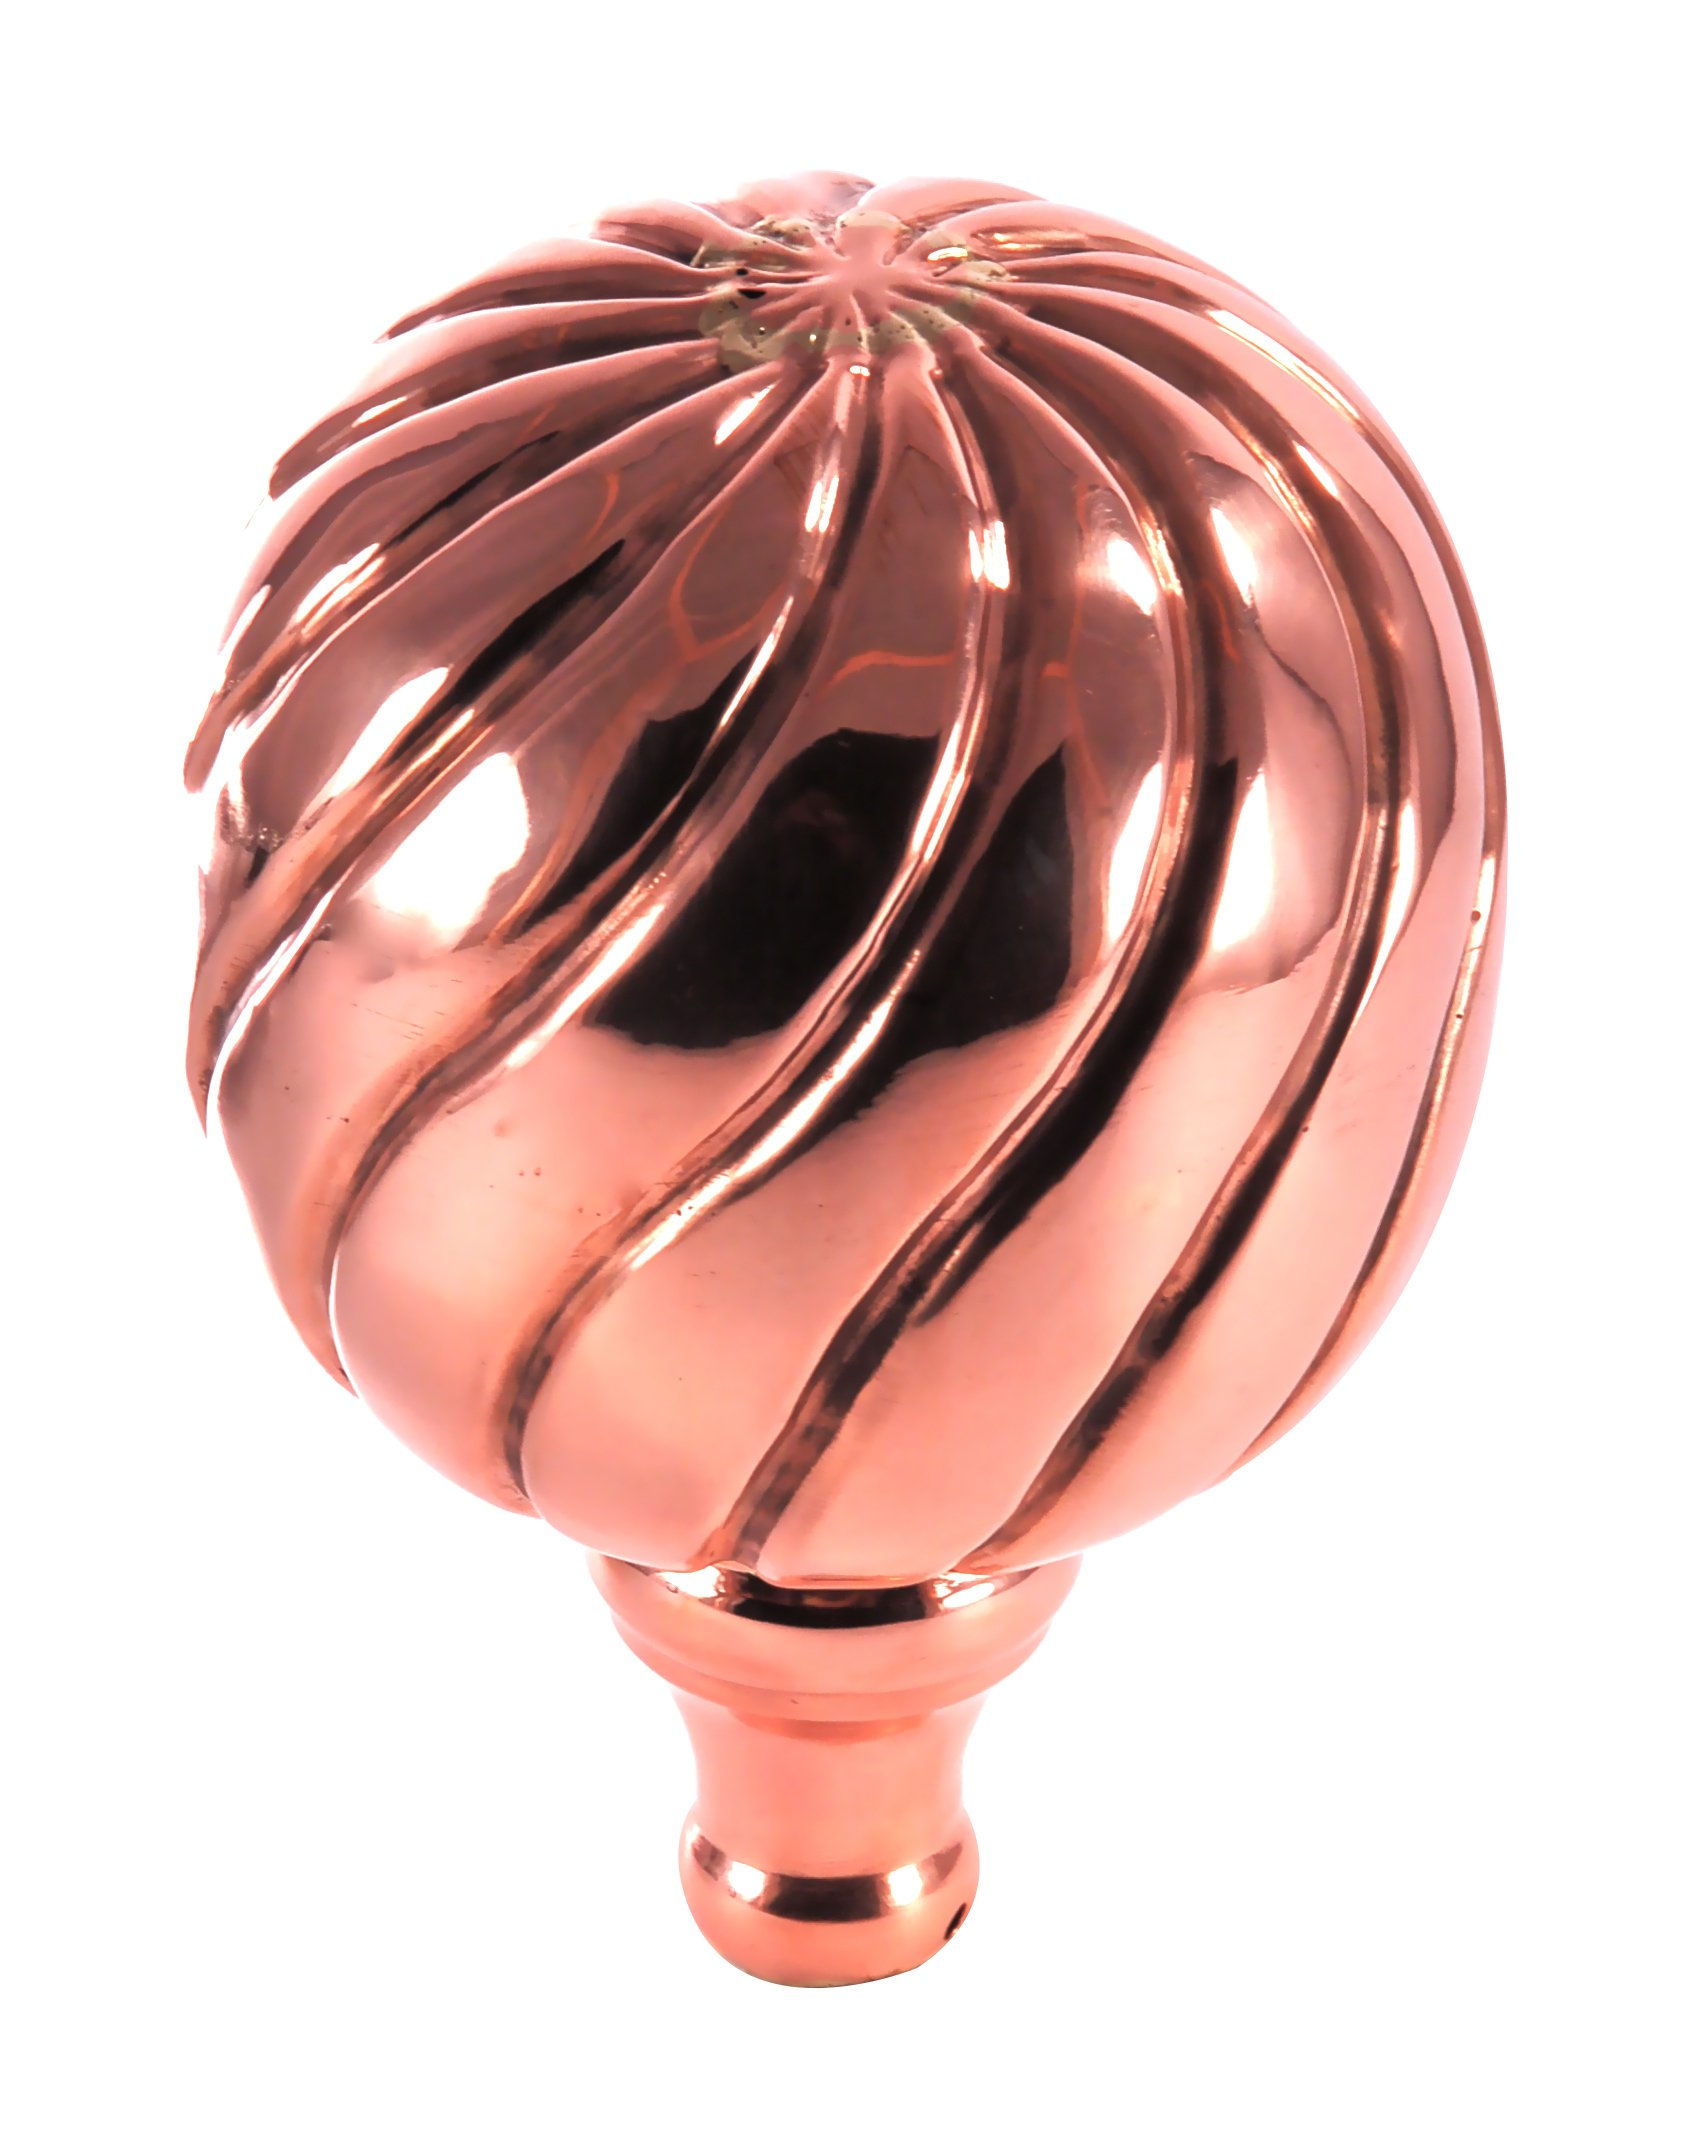 Dalvento Large Parisian Finial- Copper Polished